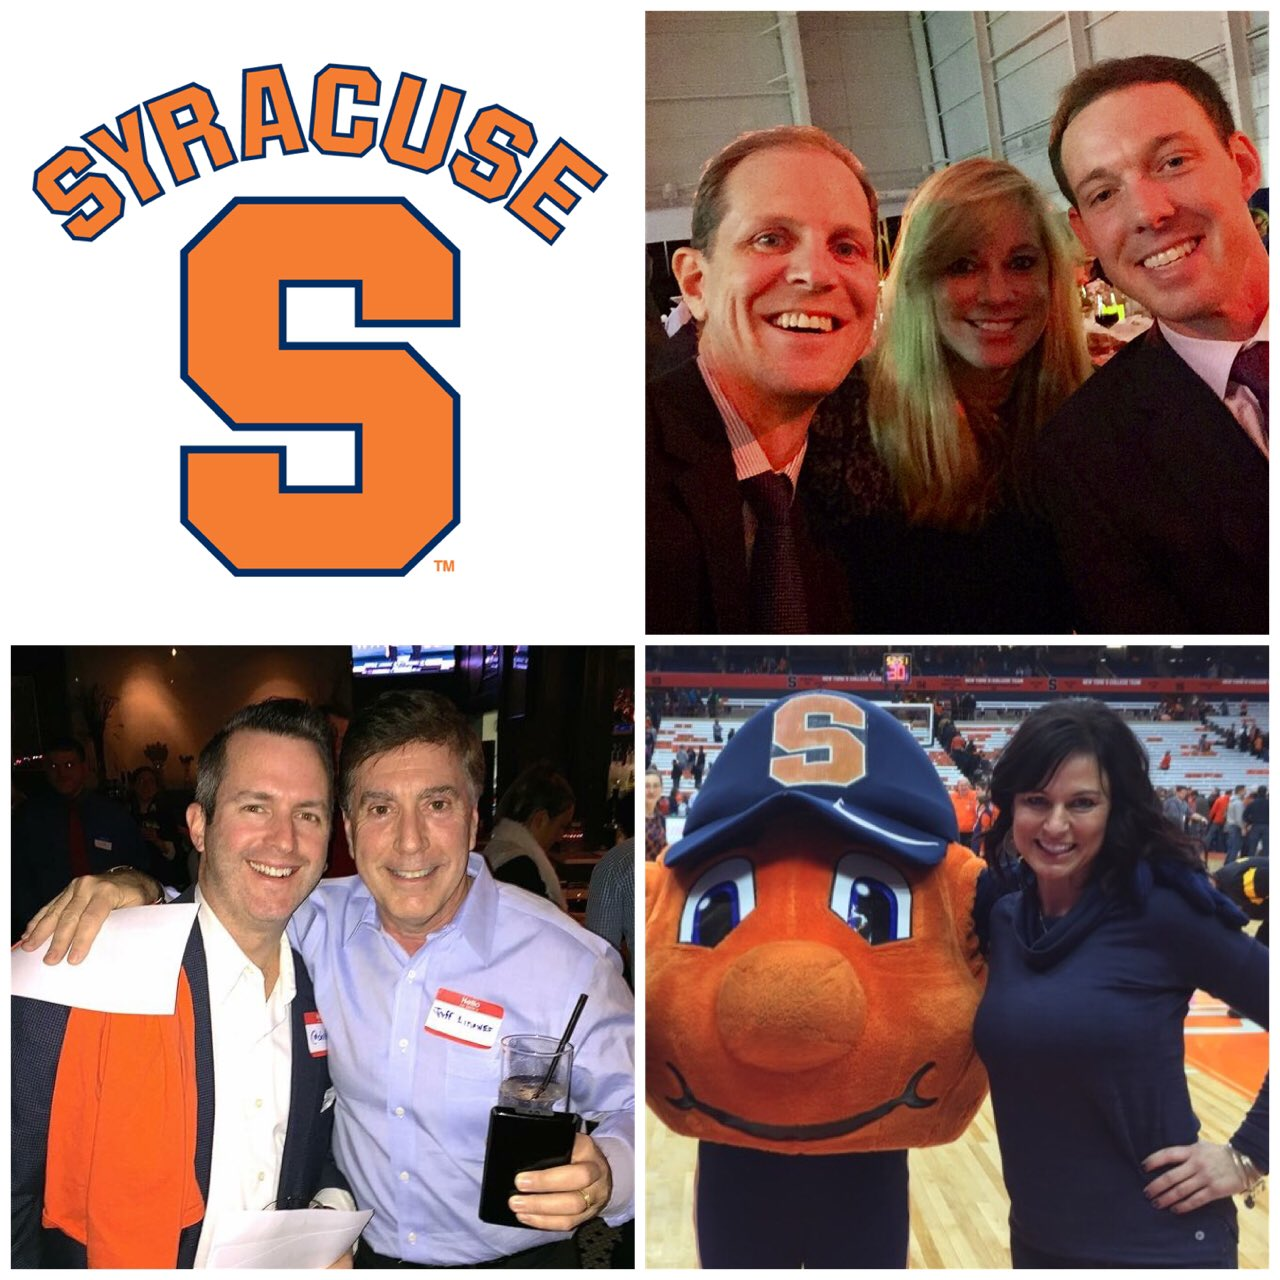 Happy Birthday Syracuse University! #NationalOrangeDay #CelebrateSU https://t.co/wQPJqhJjOh